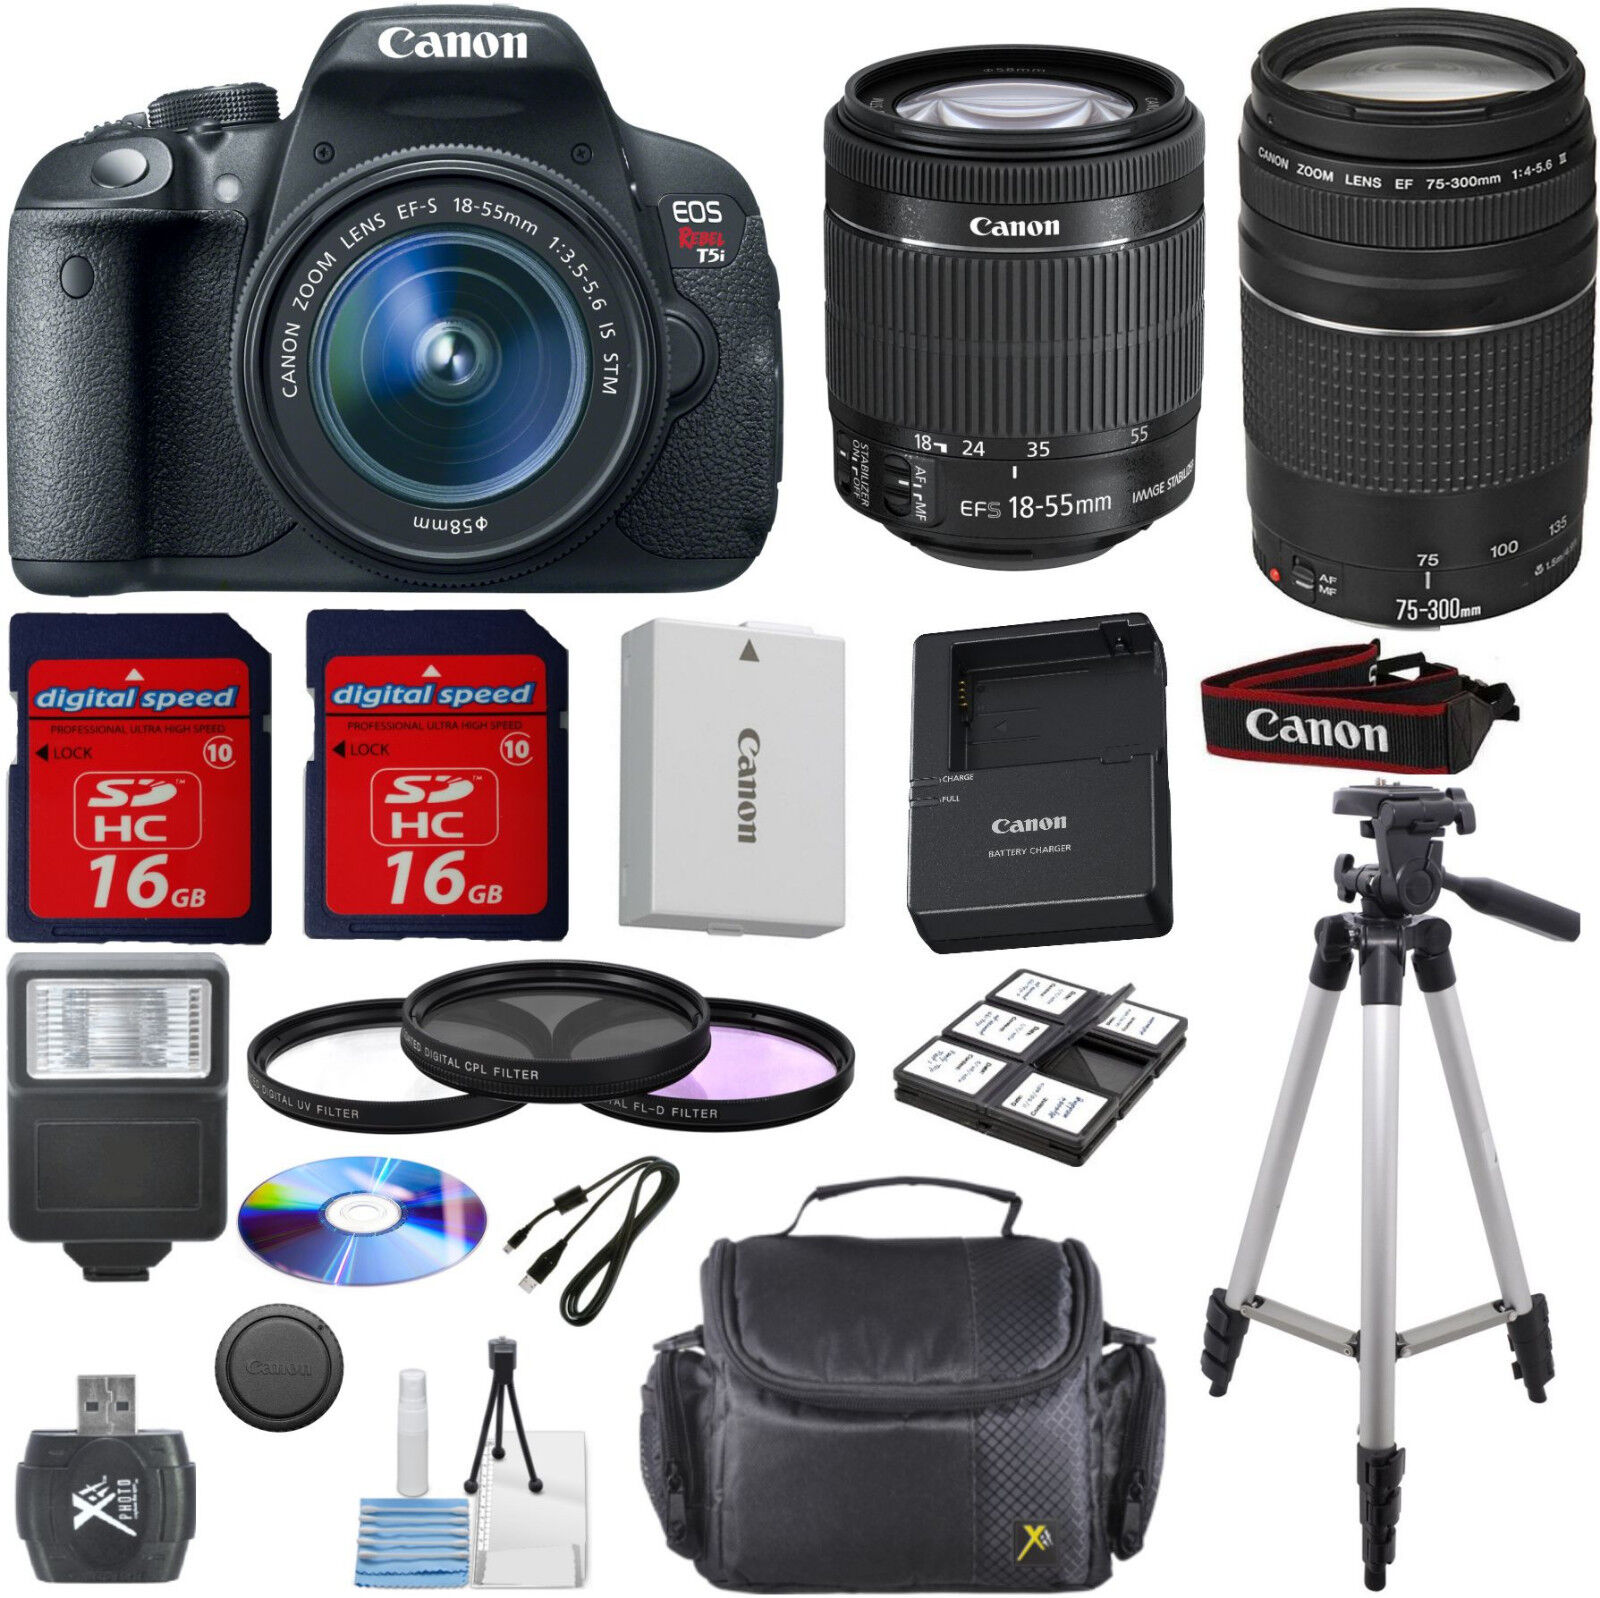 Canon Rebel T5i from Digidealz4less